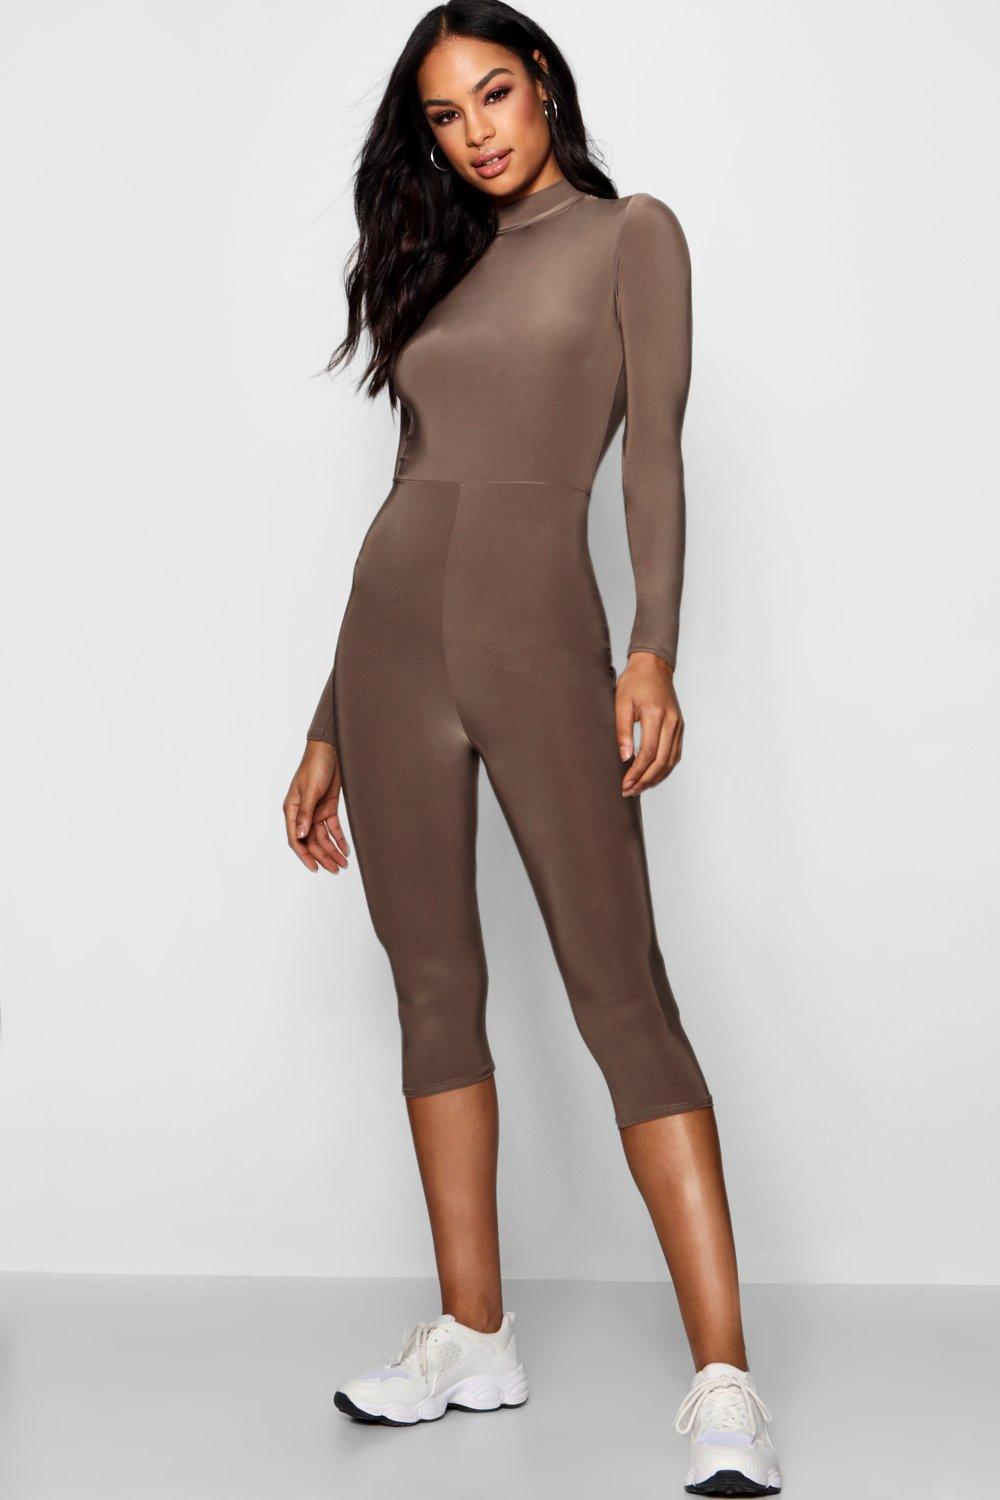 bb5ff89a63fe Lyst - Boohoo Tall Slinky High Neck Unitard Jumpsuit in Brown